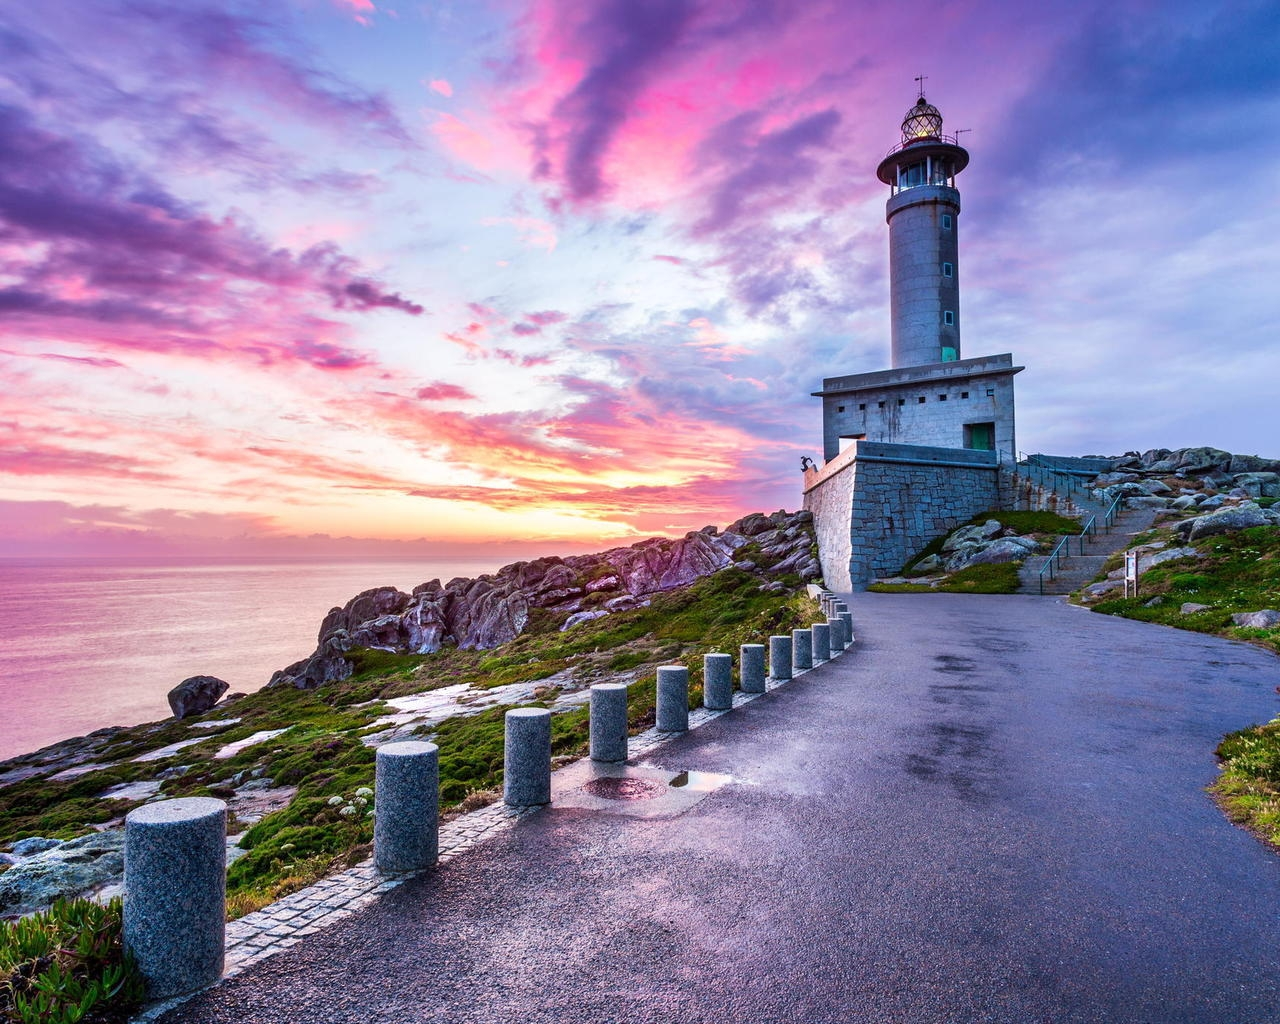 Punta Nariga Spain Lighthouse for 1280 x 1024 resolution